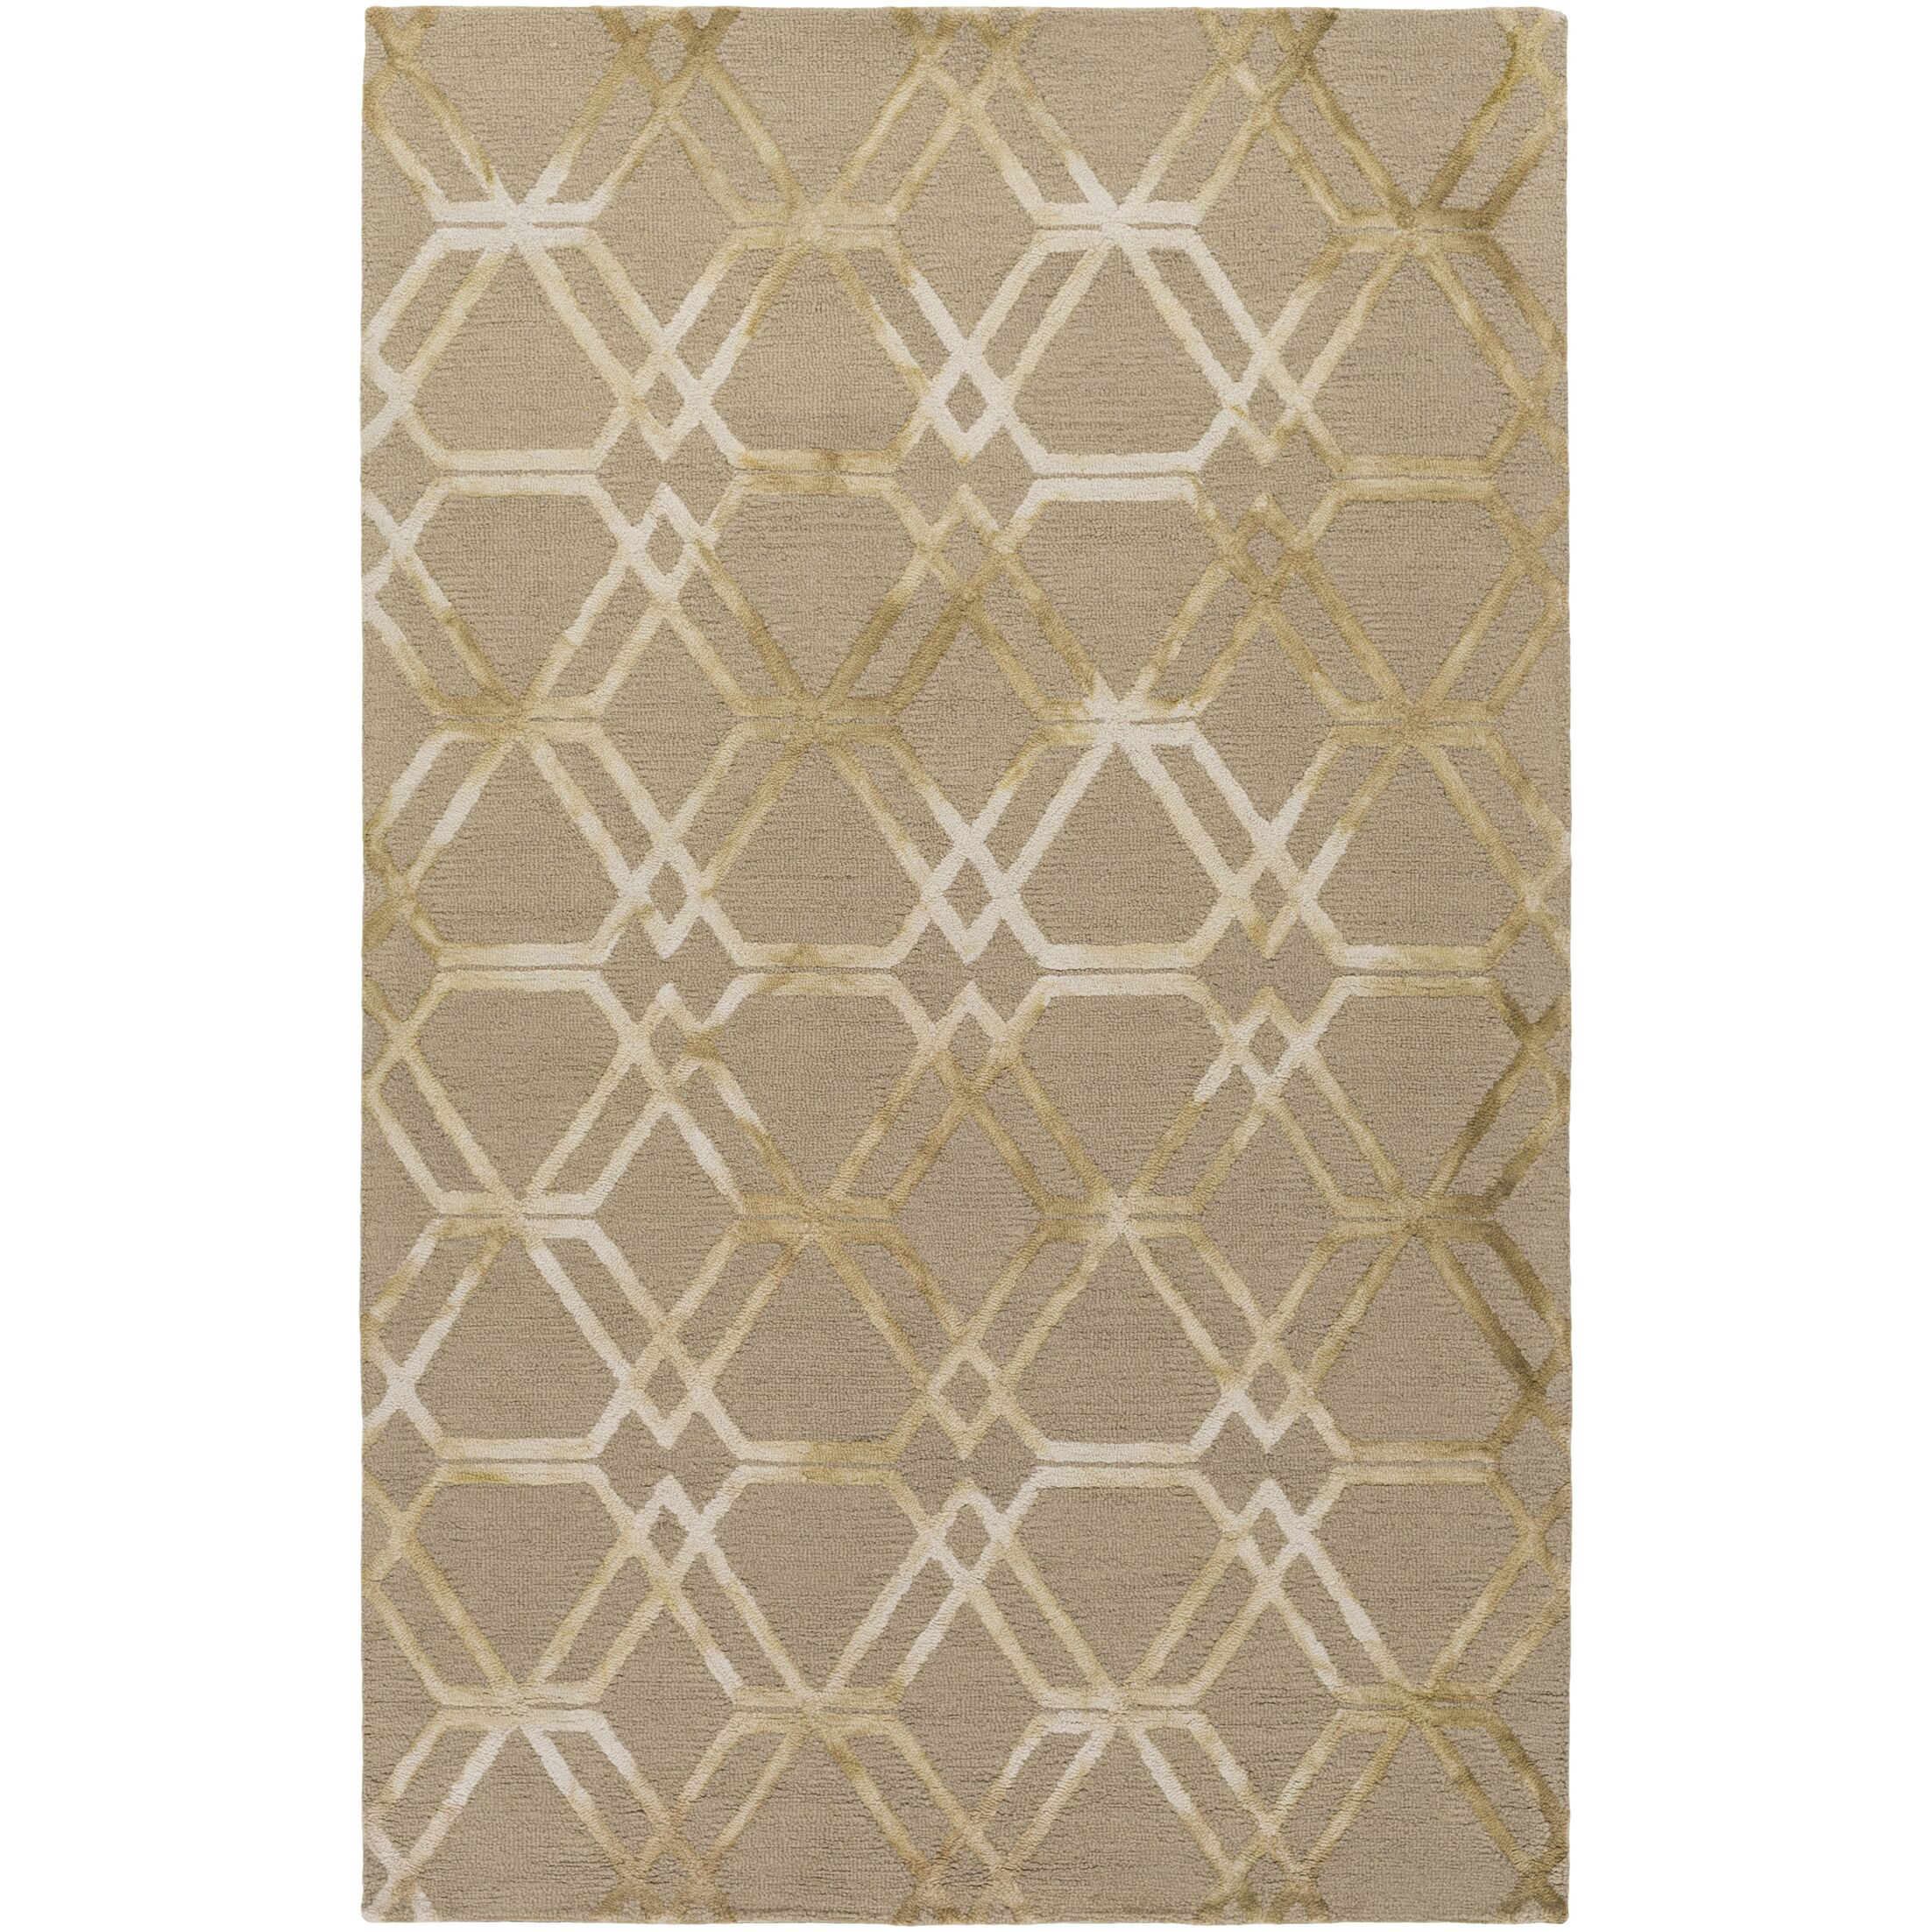 Viminal Hand-Hooked Khaki Area Rug Rug Size: Rectangle 4' x 6'